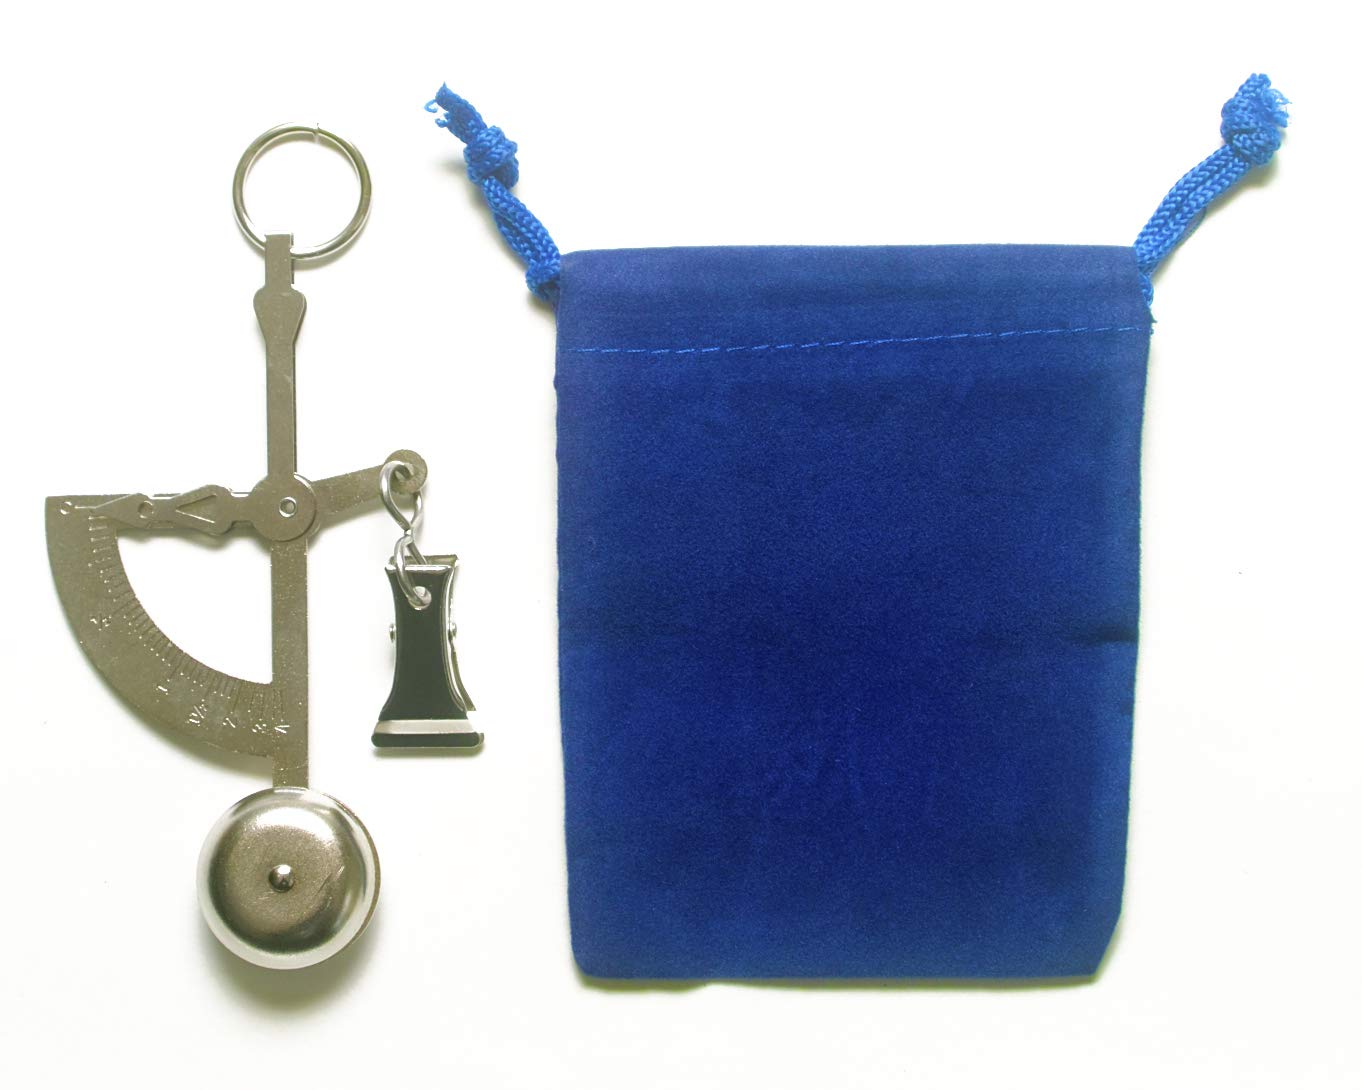 AWS Hand Held Weigh Scale Silver Analog 100 Gram or 4 Ounce Capacity with Blue Velvet Pouch Bundle